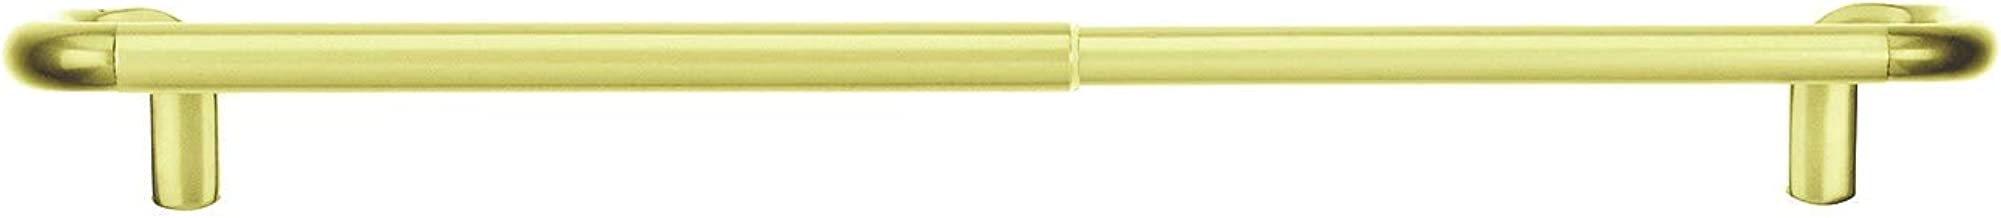 Umbra Twilight Room Darkening Wrap Around Perfect for Blackout, Telescoping Curtain Rod, 28 to 48-Inch, Brass